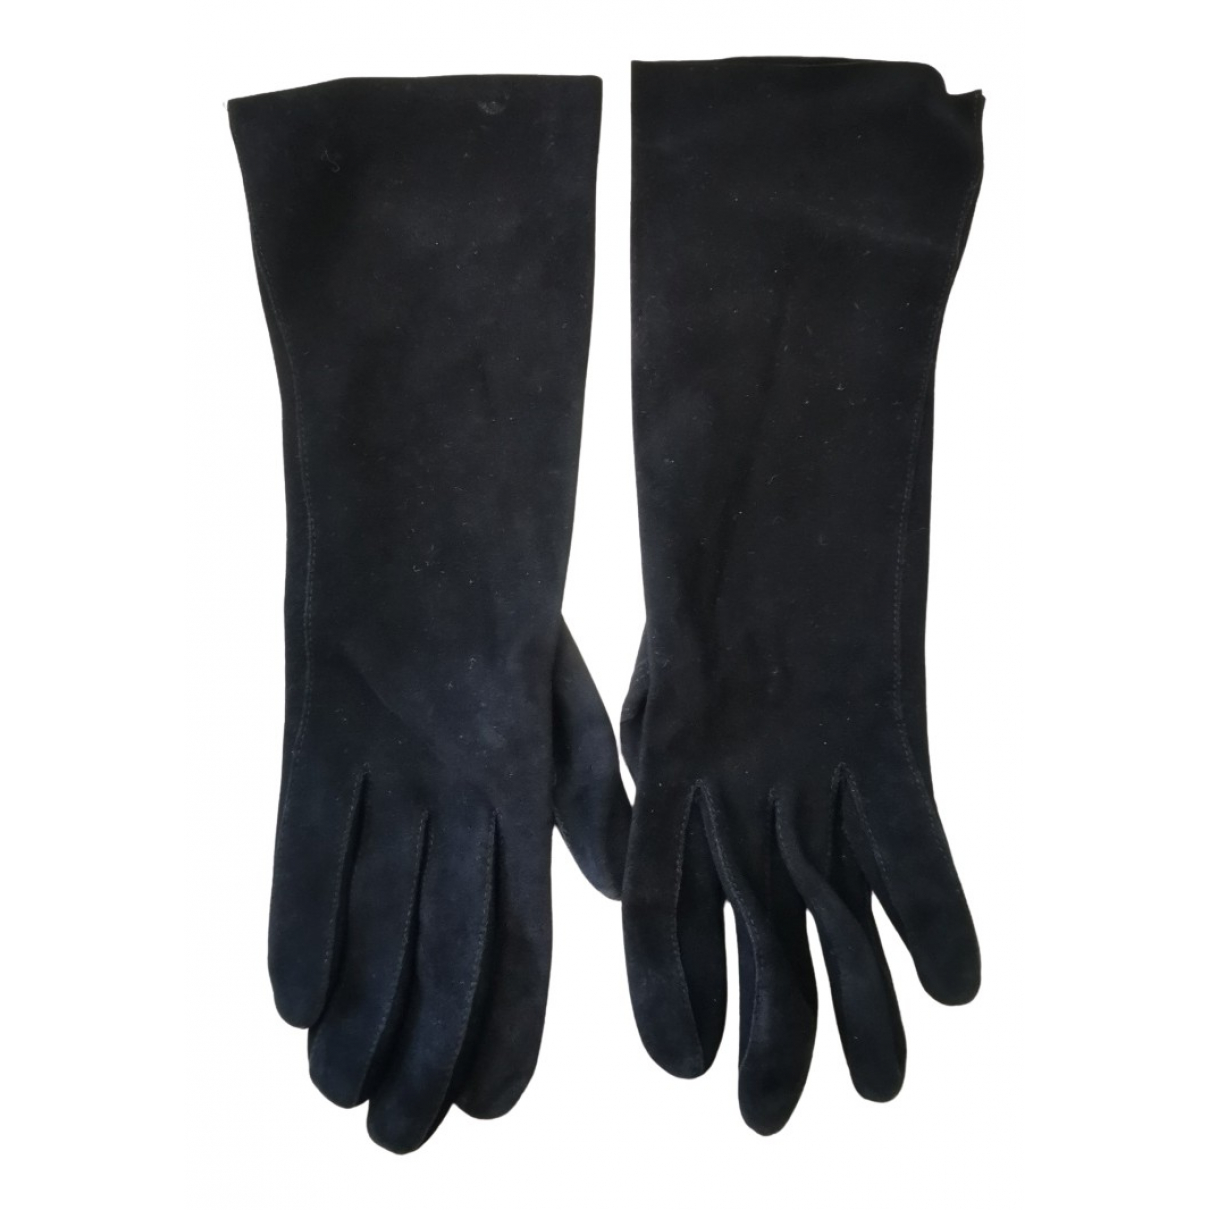 Non Signé / Unsigned N Black Leather Gloves for Women 6.5 Inches